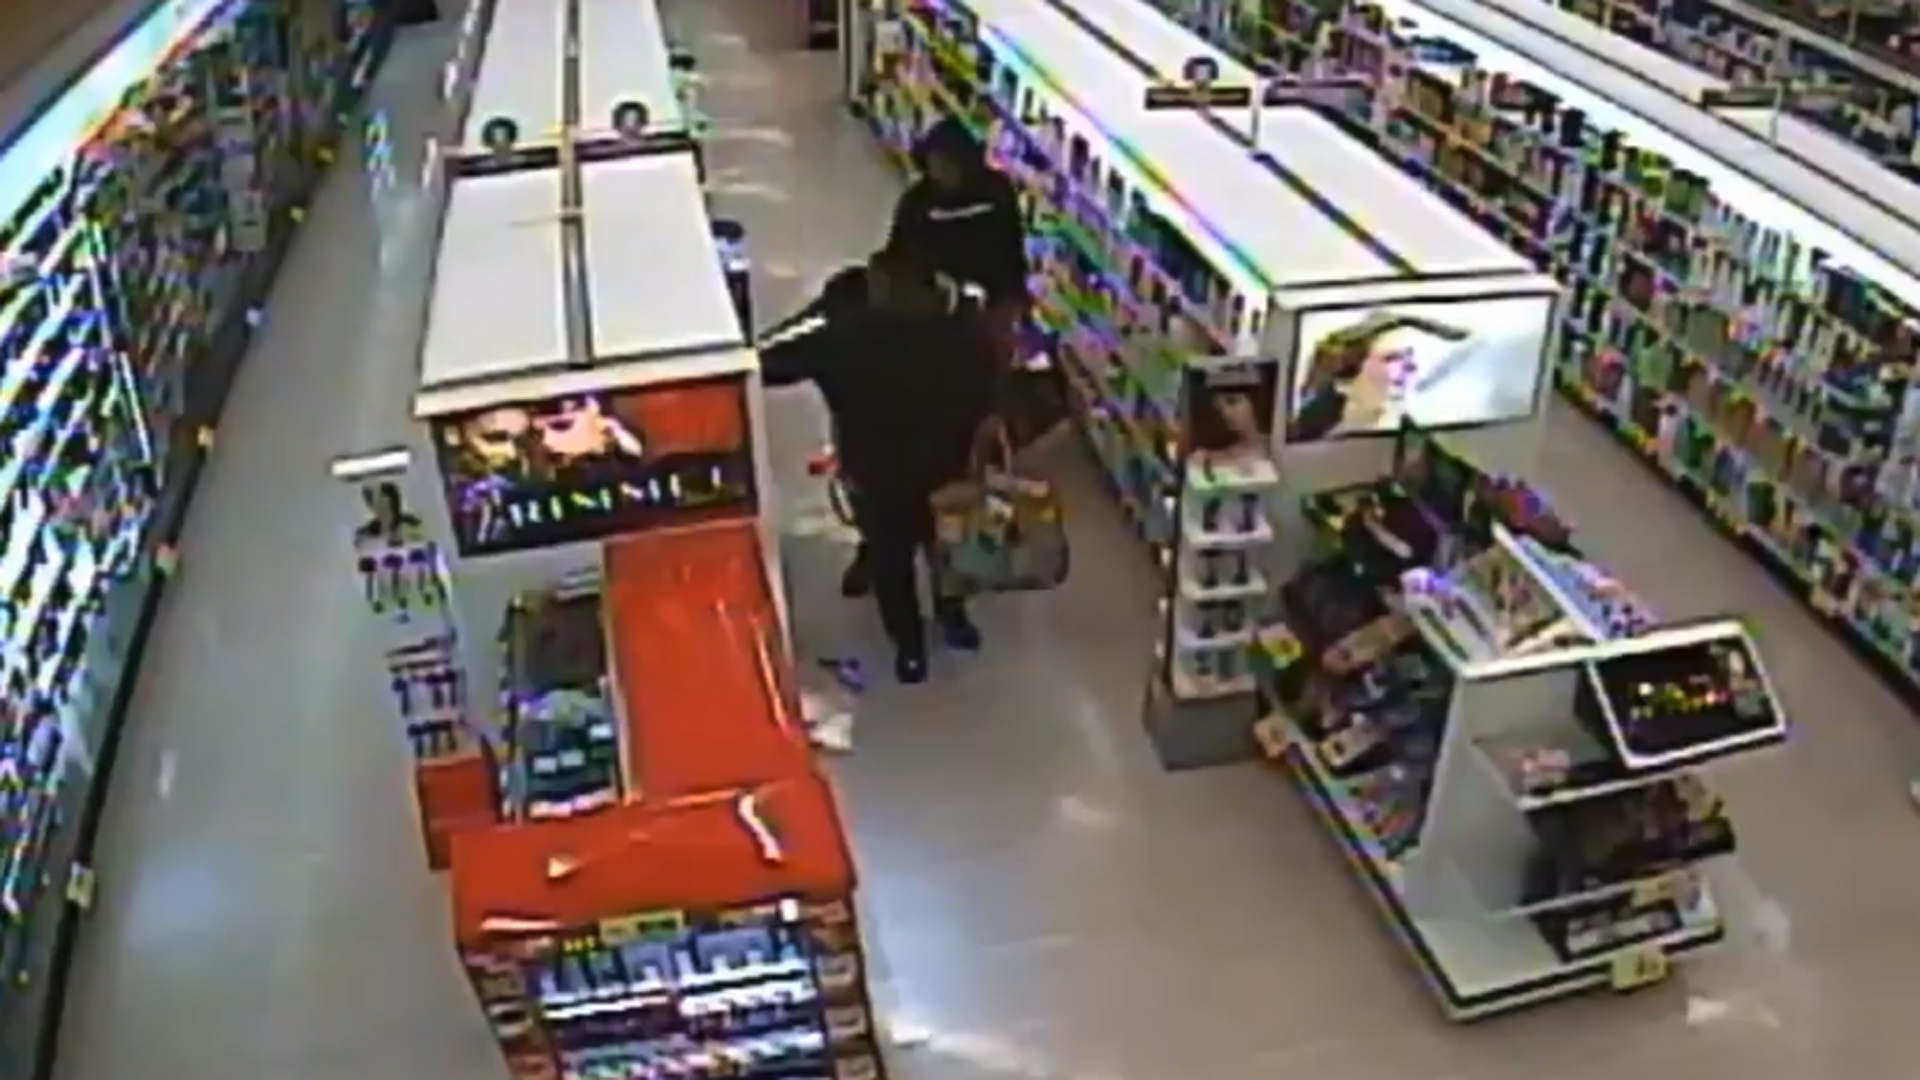 Yucaipa police released surveillance video of the theft at Rite Aid on March 6, 2020.